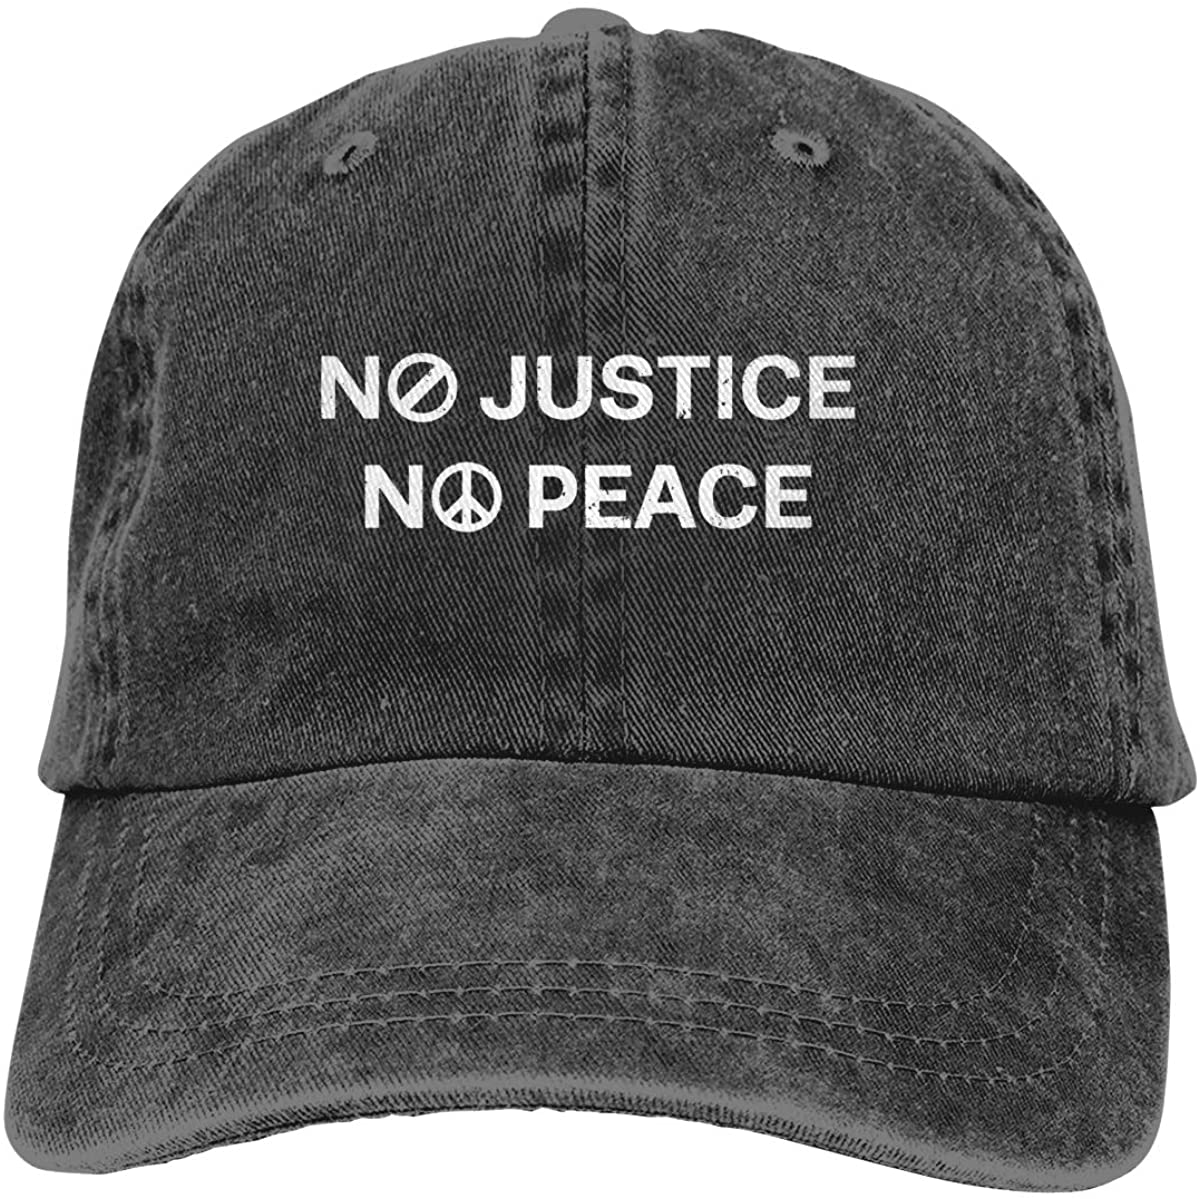 Unisex Classic American Style Printing No Justice, No Peace Adult Adjustable Denim Cowboy Hat